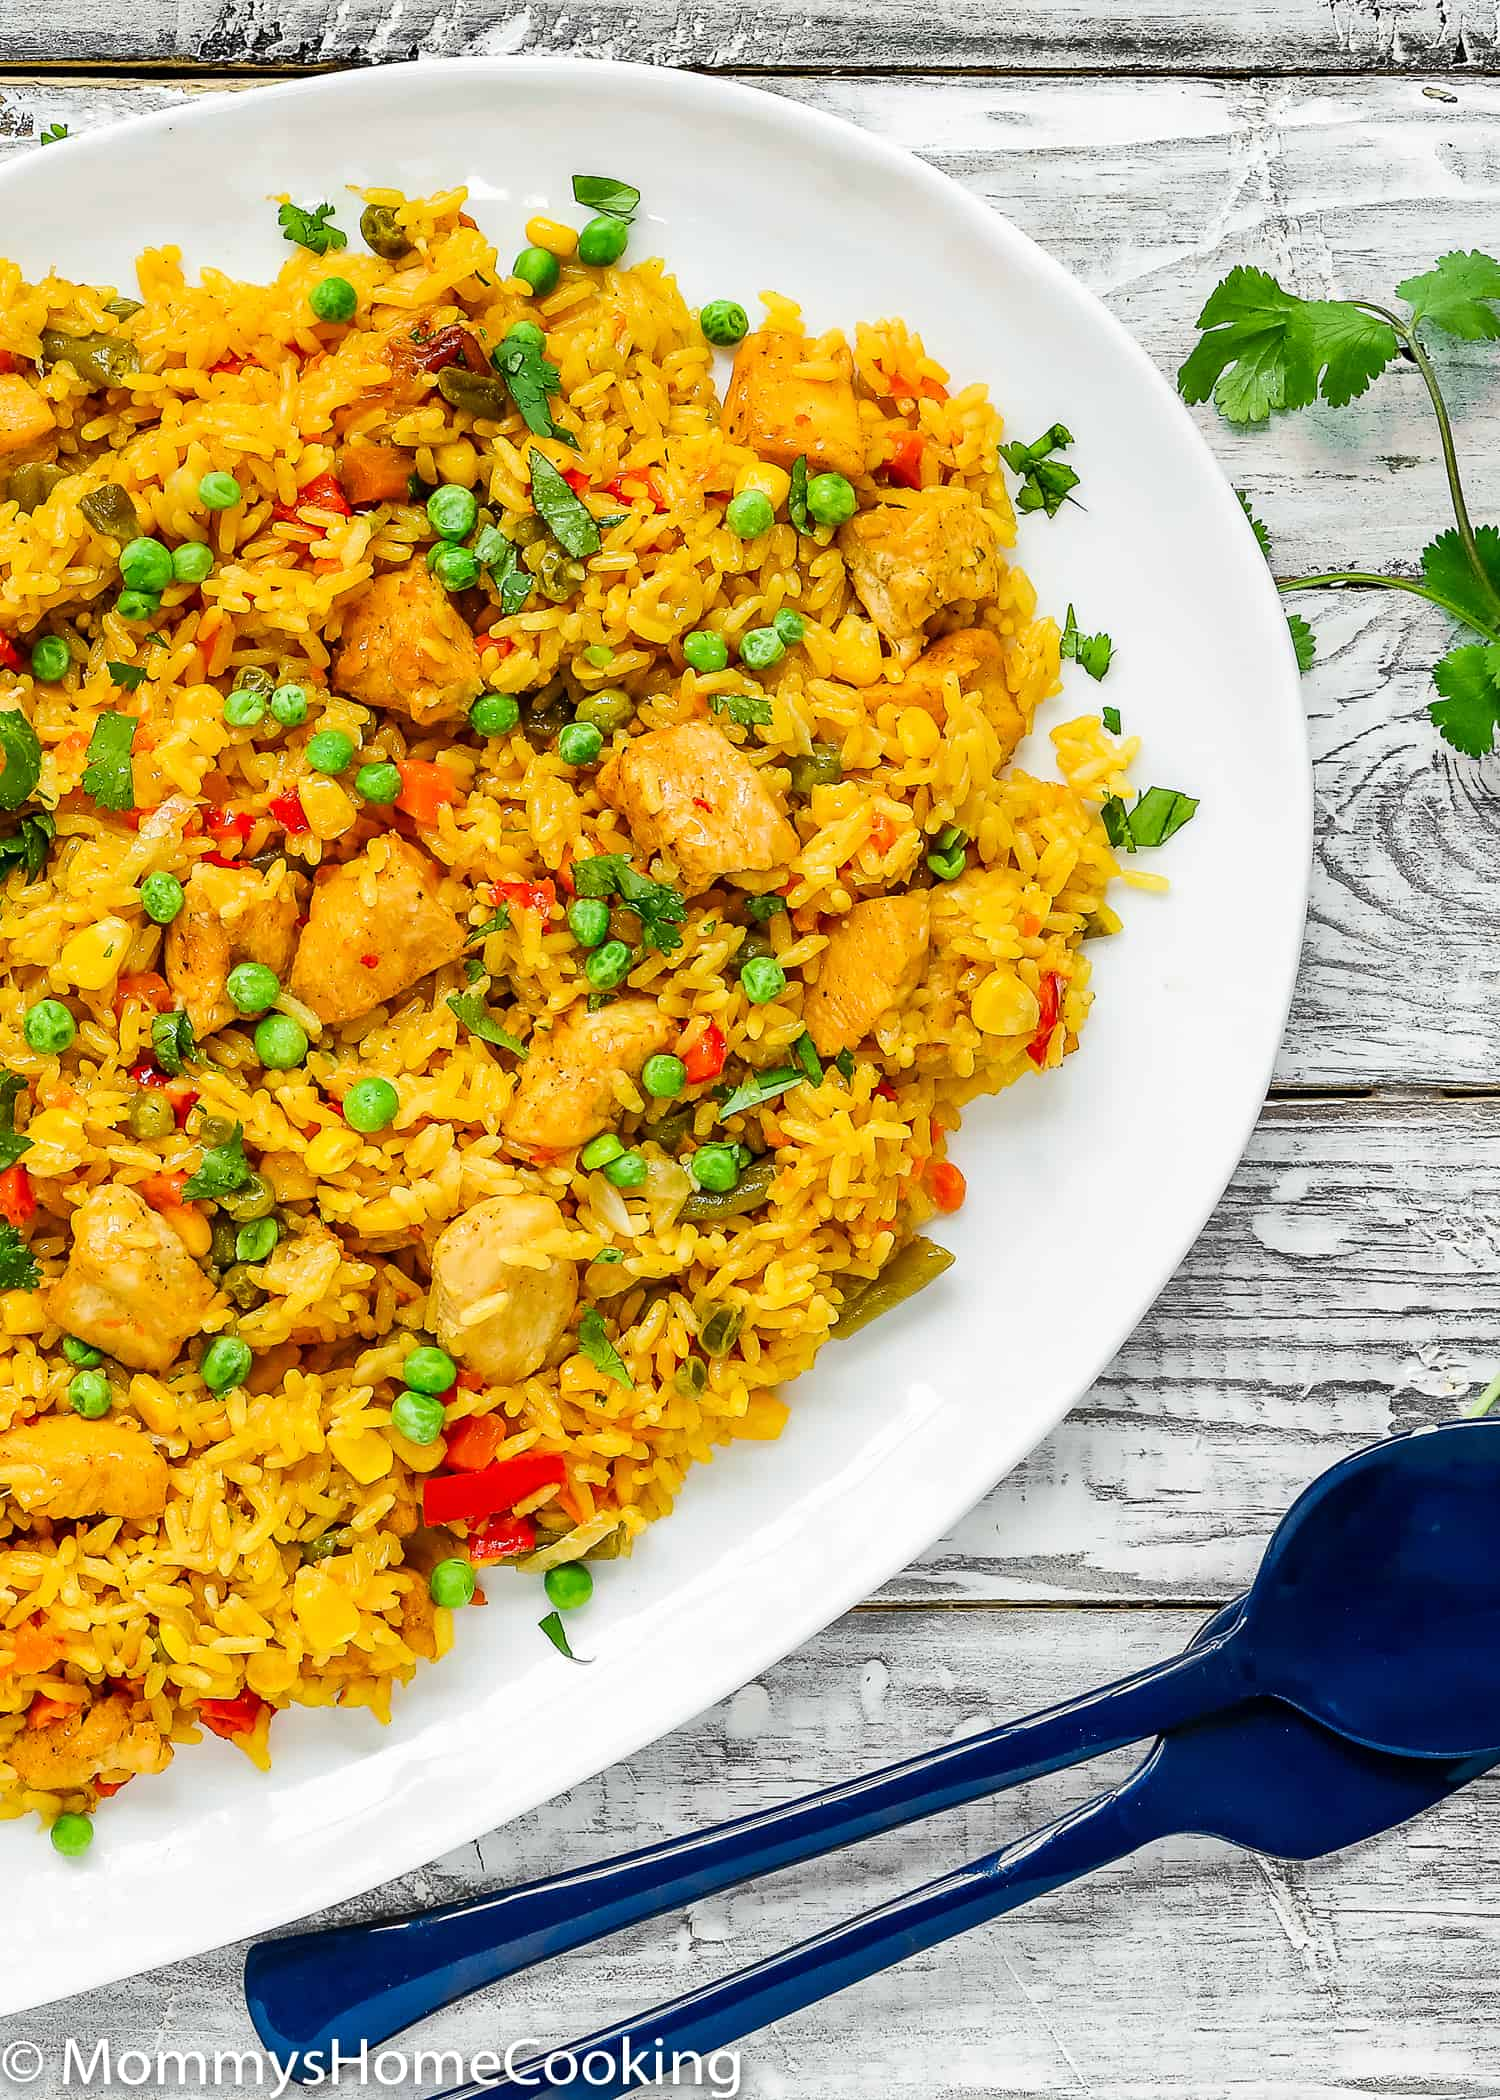 This Easy Instant Pot Arroz con Pollo recipe is ridiculously easy to make and unbelievably delicious! It has protein, vegetables, and grains cooked together in one pot in about 30 minutes. This one is definitely one to keep in yourrotation. https://mommyshomecooking.com